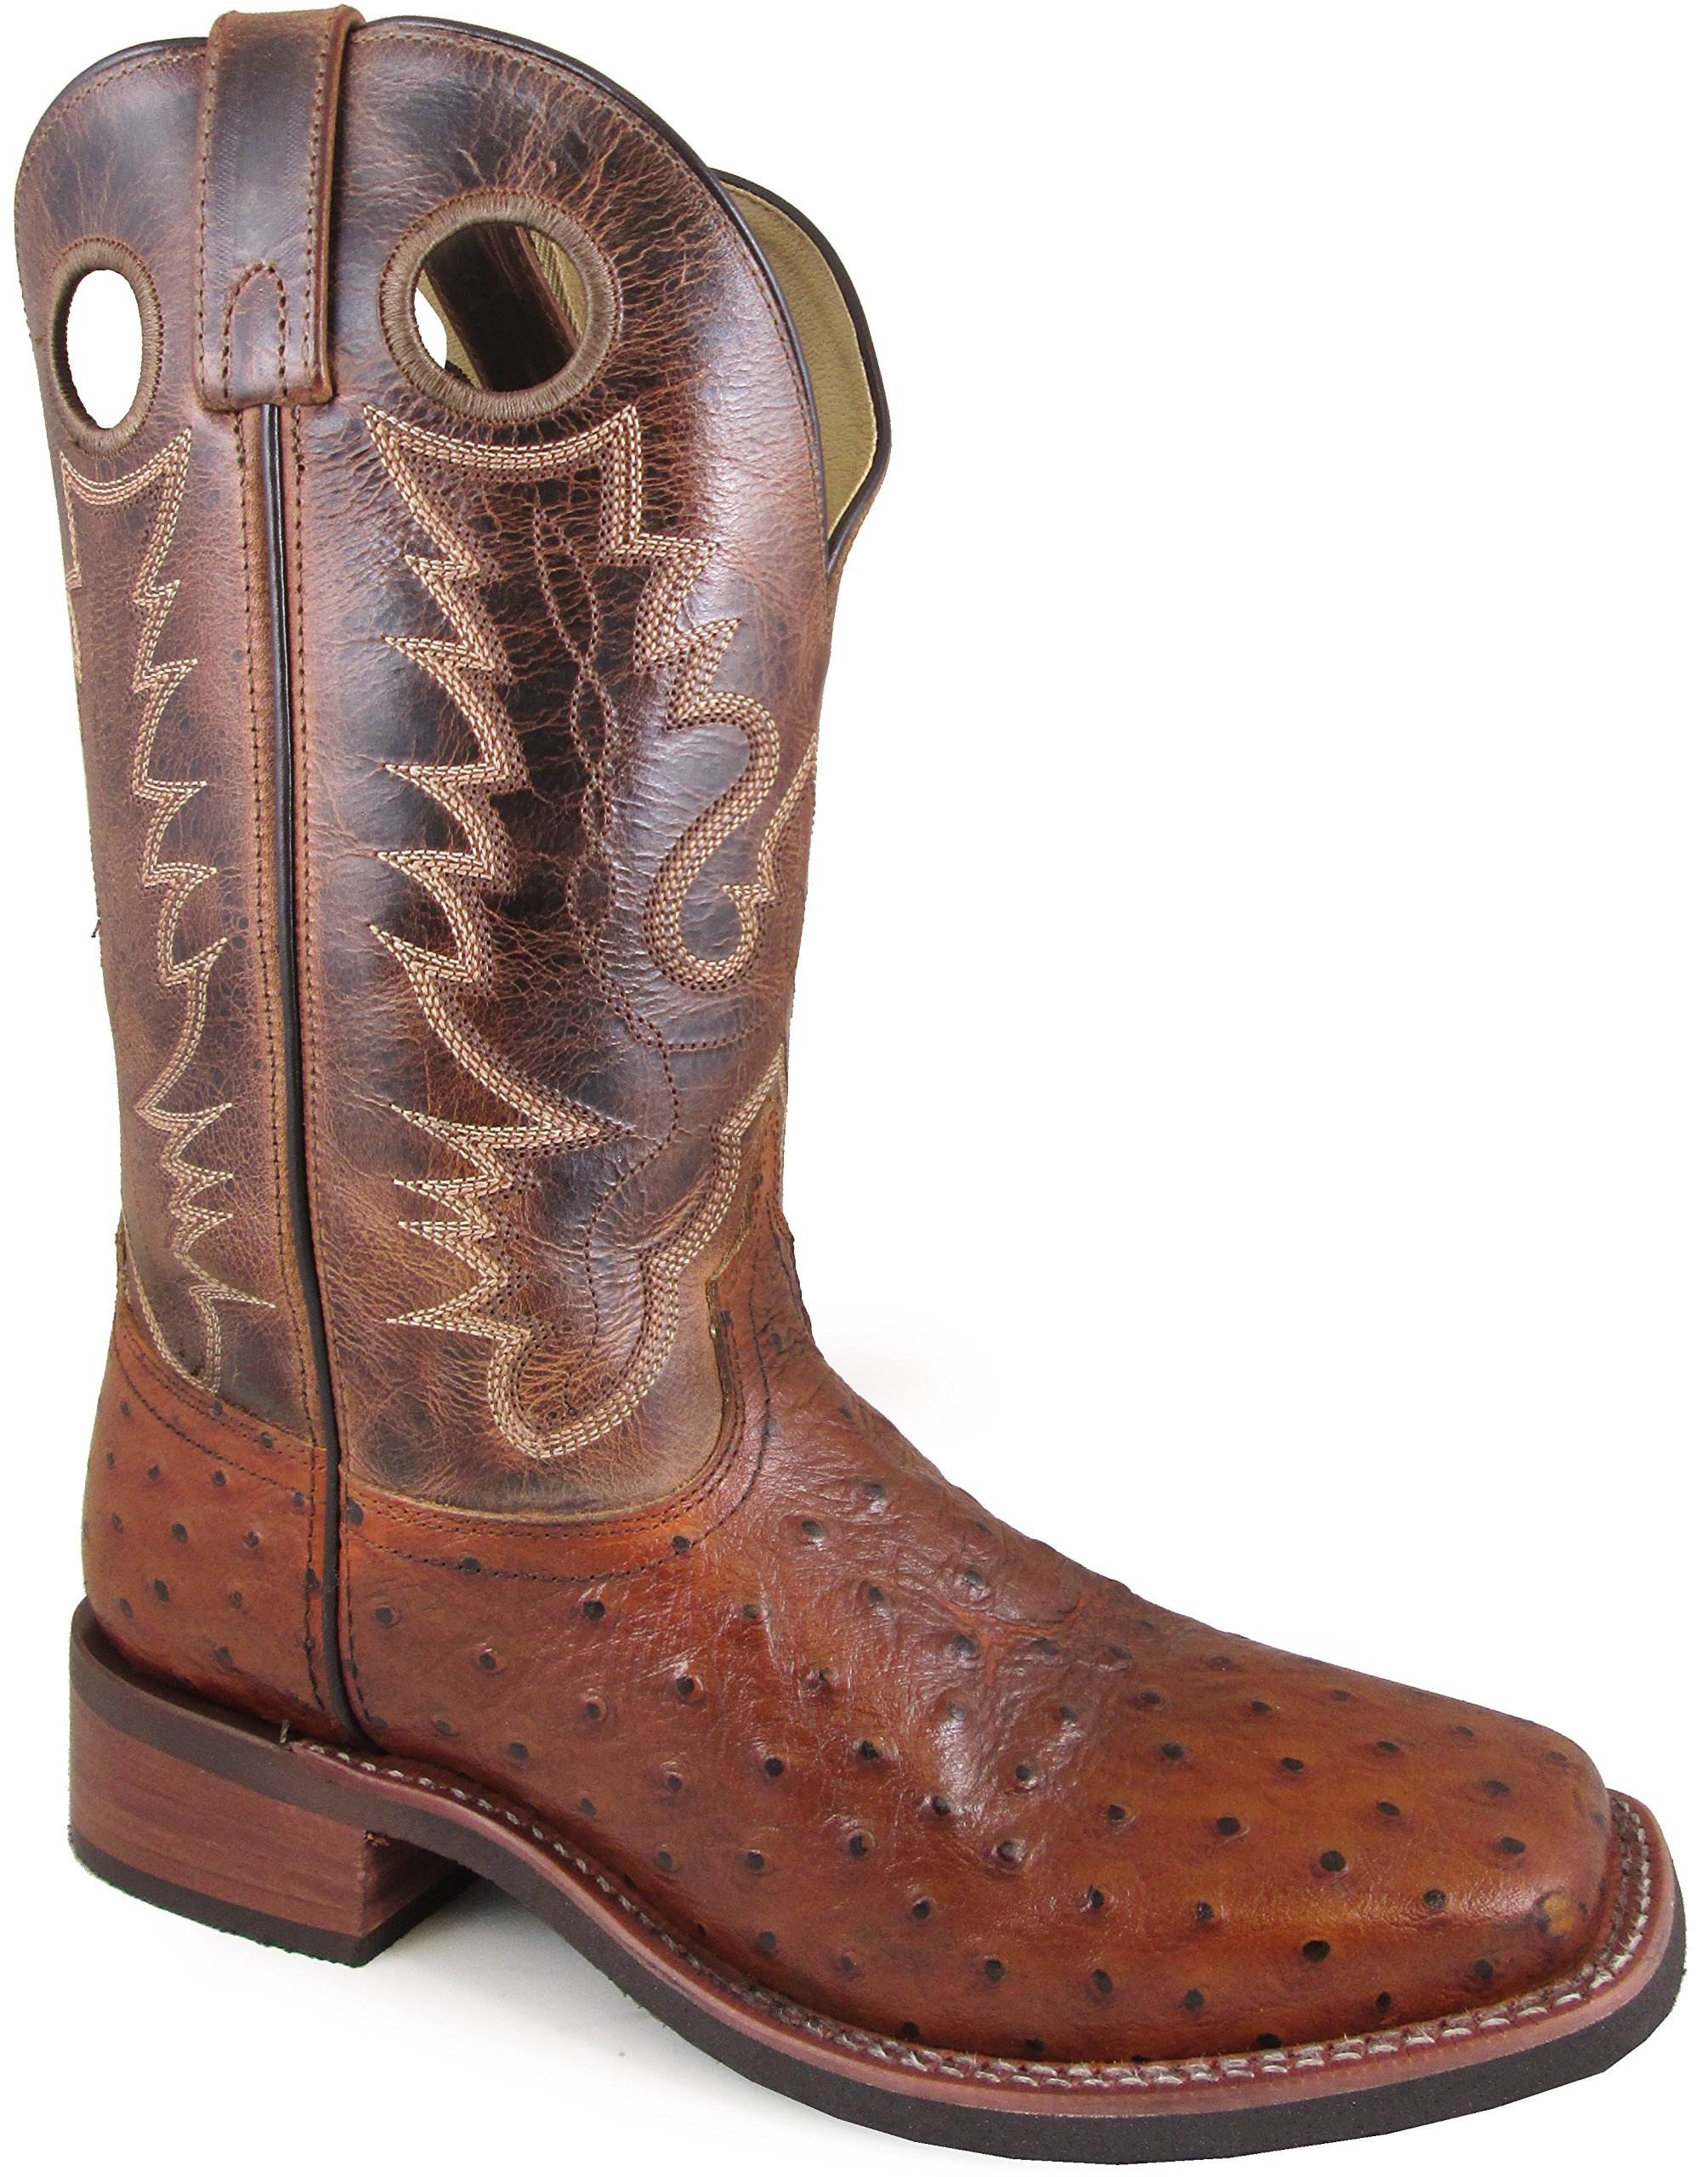 Smoky Mountain Men's Danville Pull On Stitched Textured Square Toe Cognac/Brown Crackle Boots 9.5EE